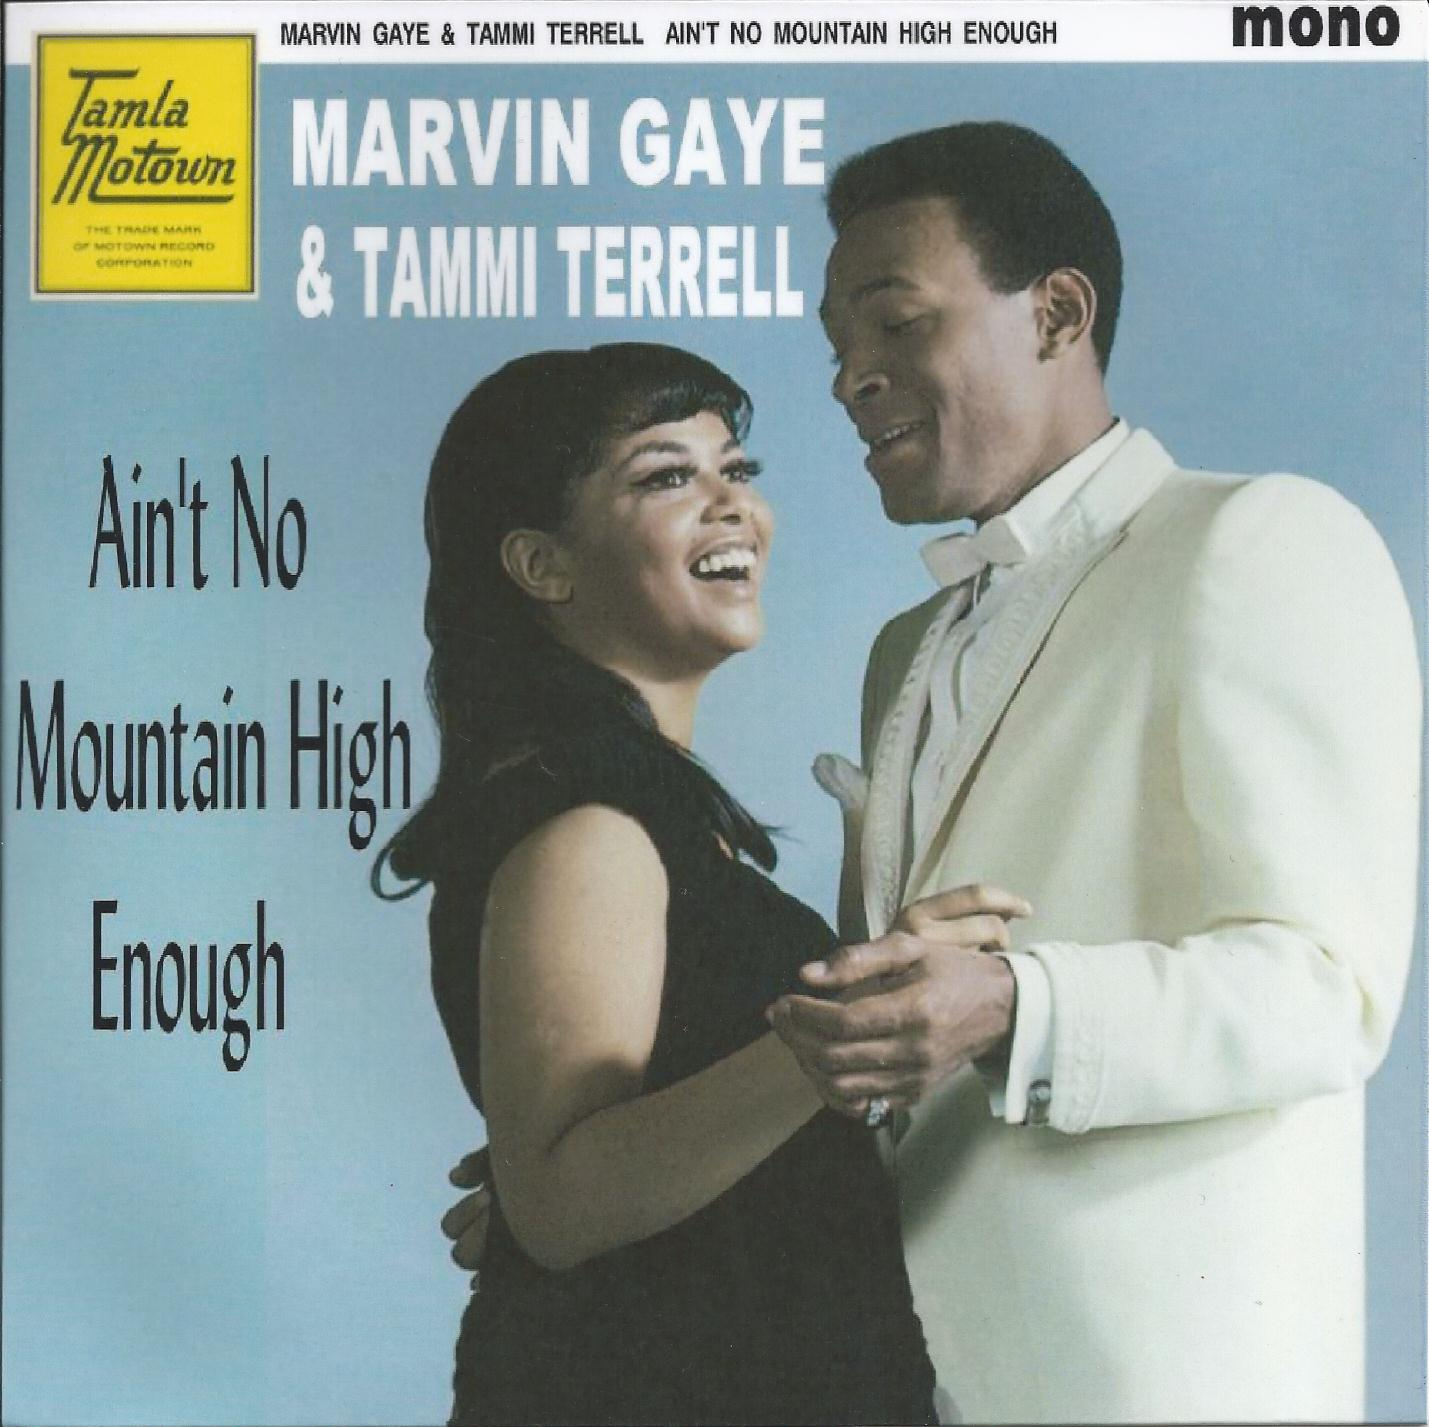 Aint No Mountain High Enough Marvin Gaye Ukelele